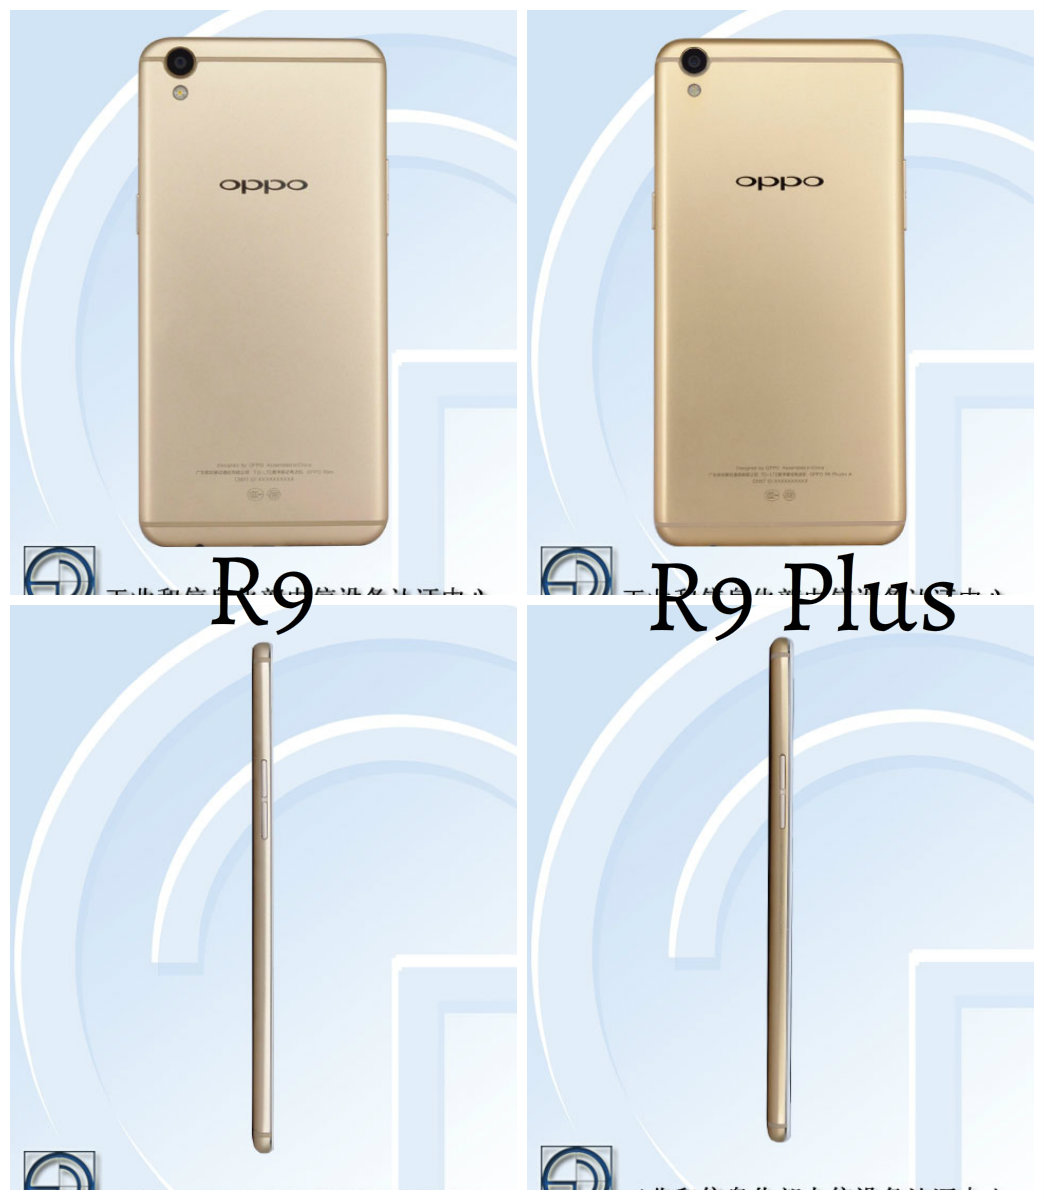 Oppo-R9-and-R9-Plus-certified-by-TENAAت